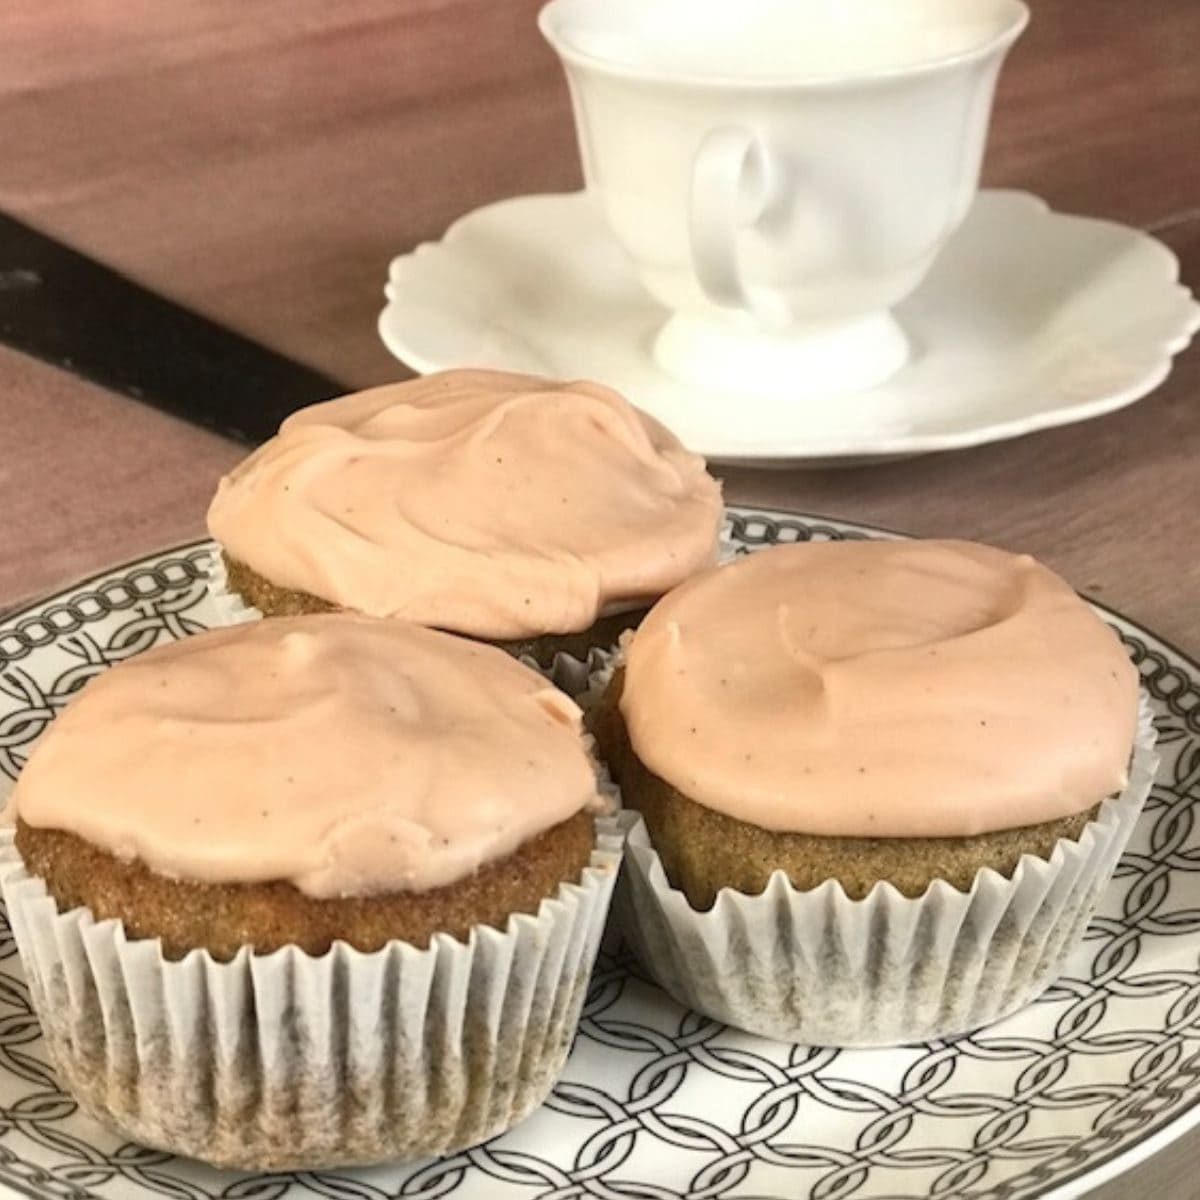 3 cupcakes on small plate